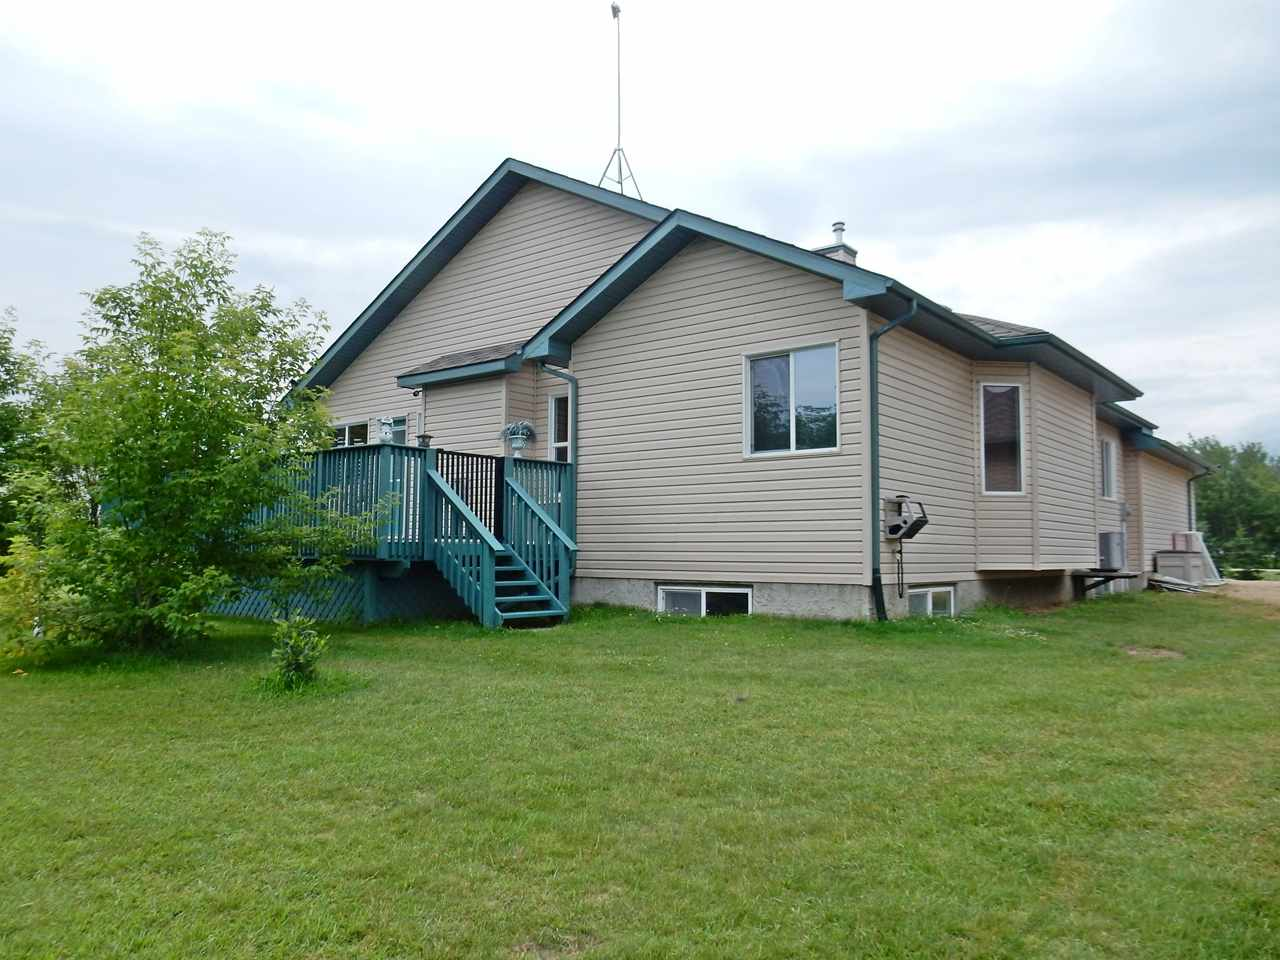 Photo 26: 4 Lost Point Lake Drive: Rural Sturgeon County House for sale : MLS(r) # E4049296